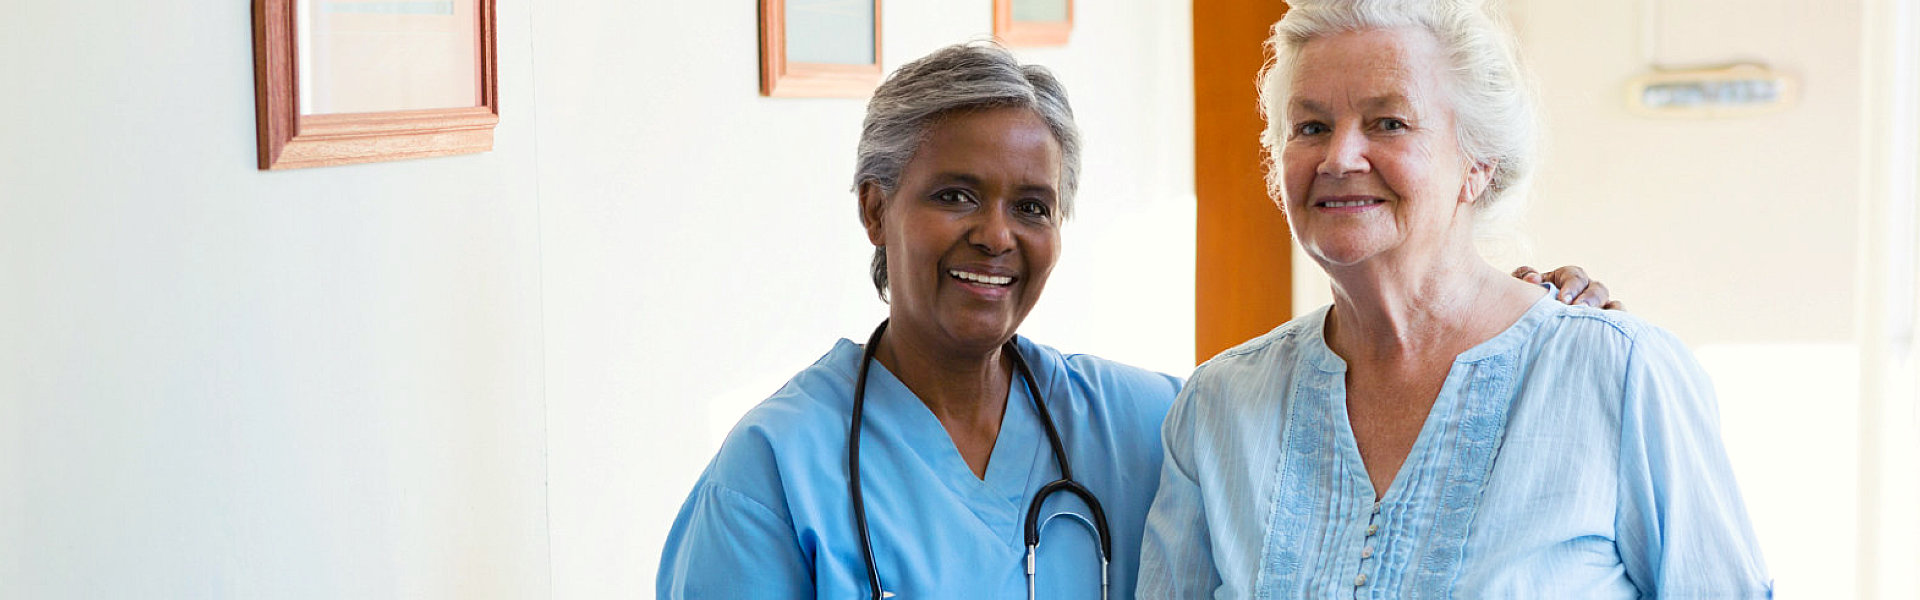 nurse and senior woman inside the house smiling